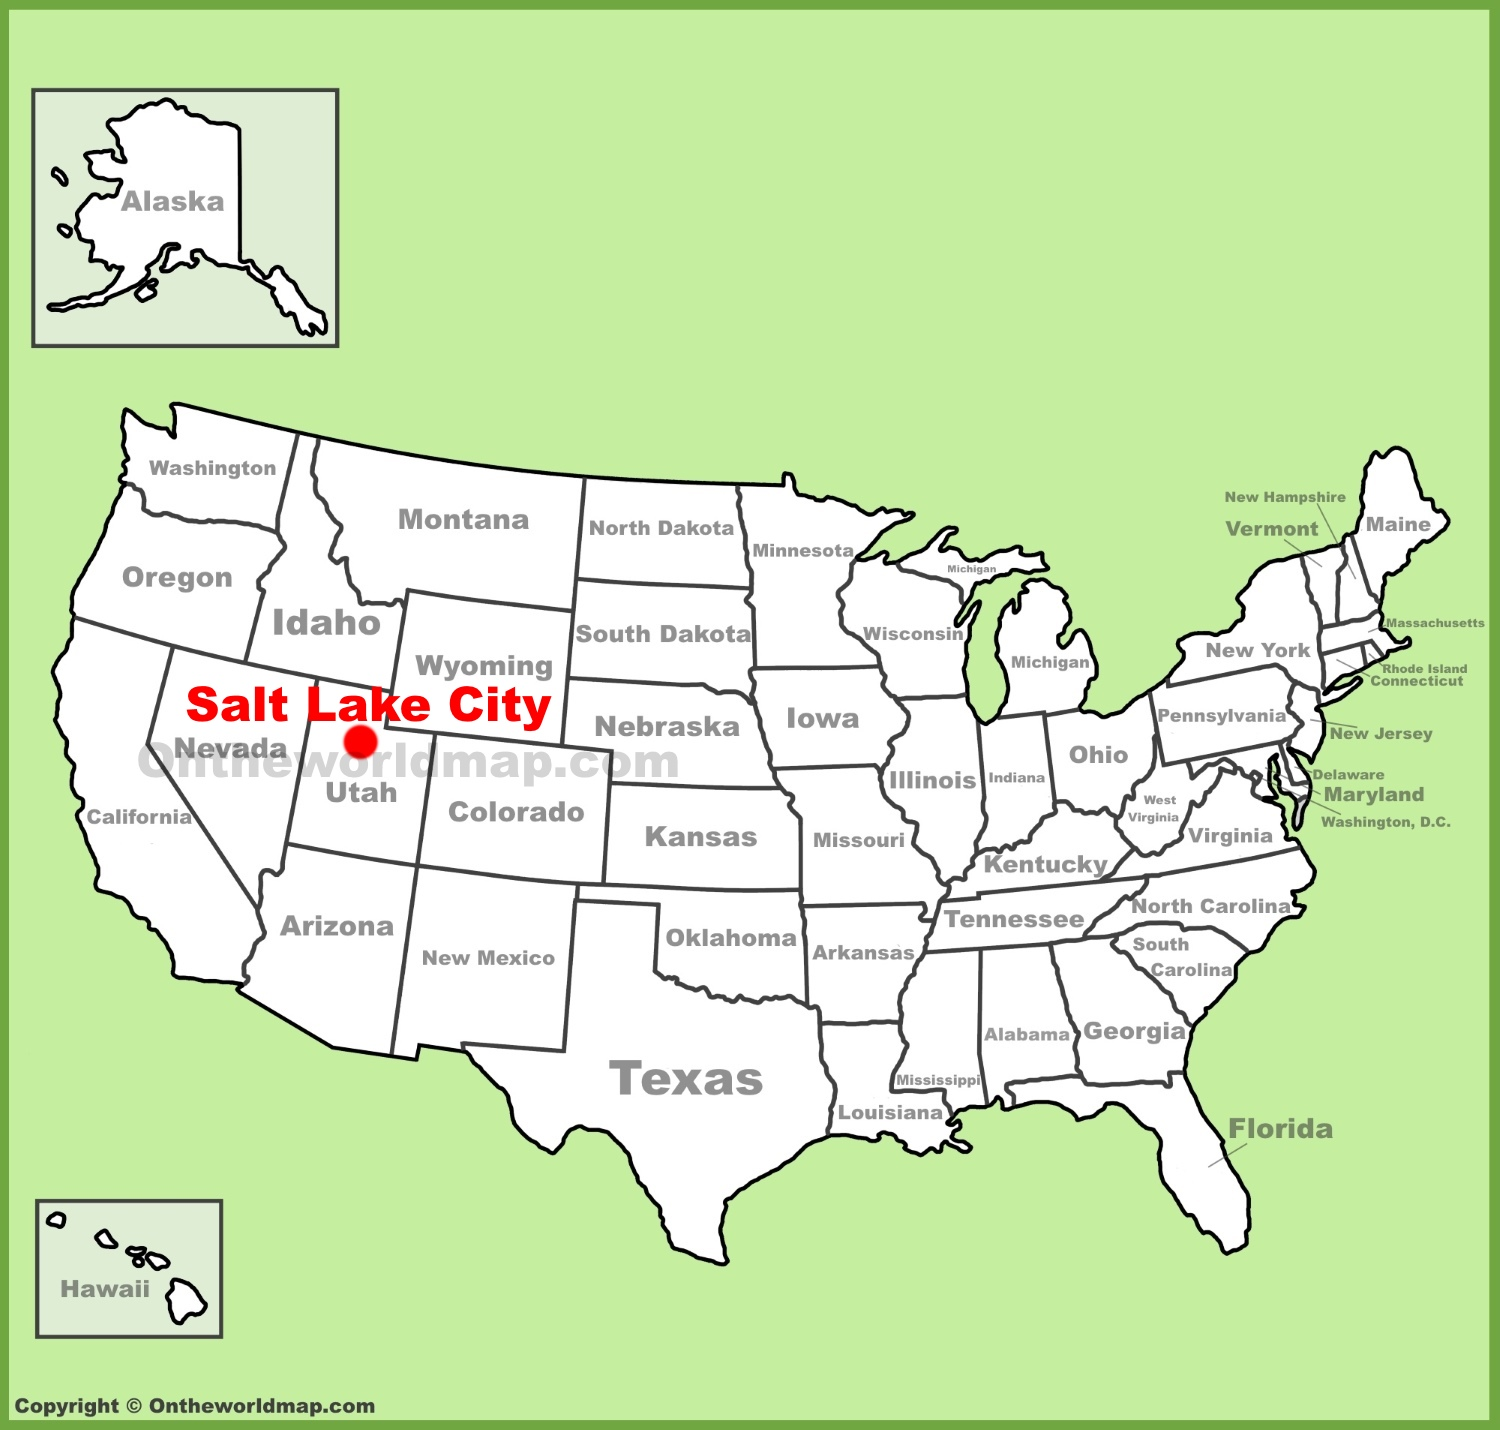 Salt Lake City Location On The US Map - Salt lake city map of us